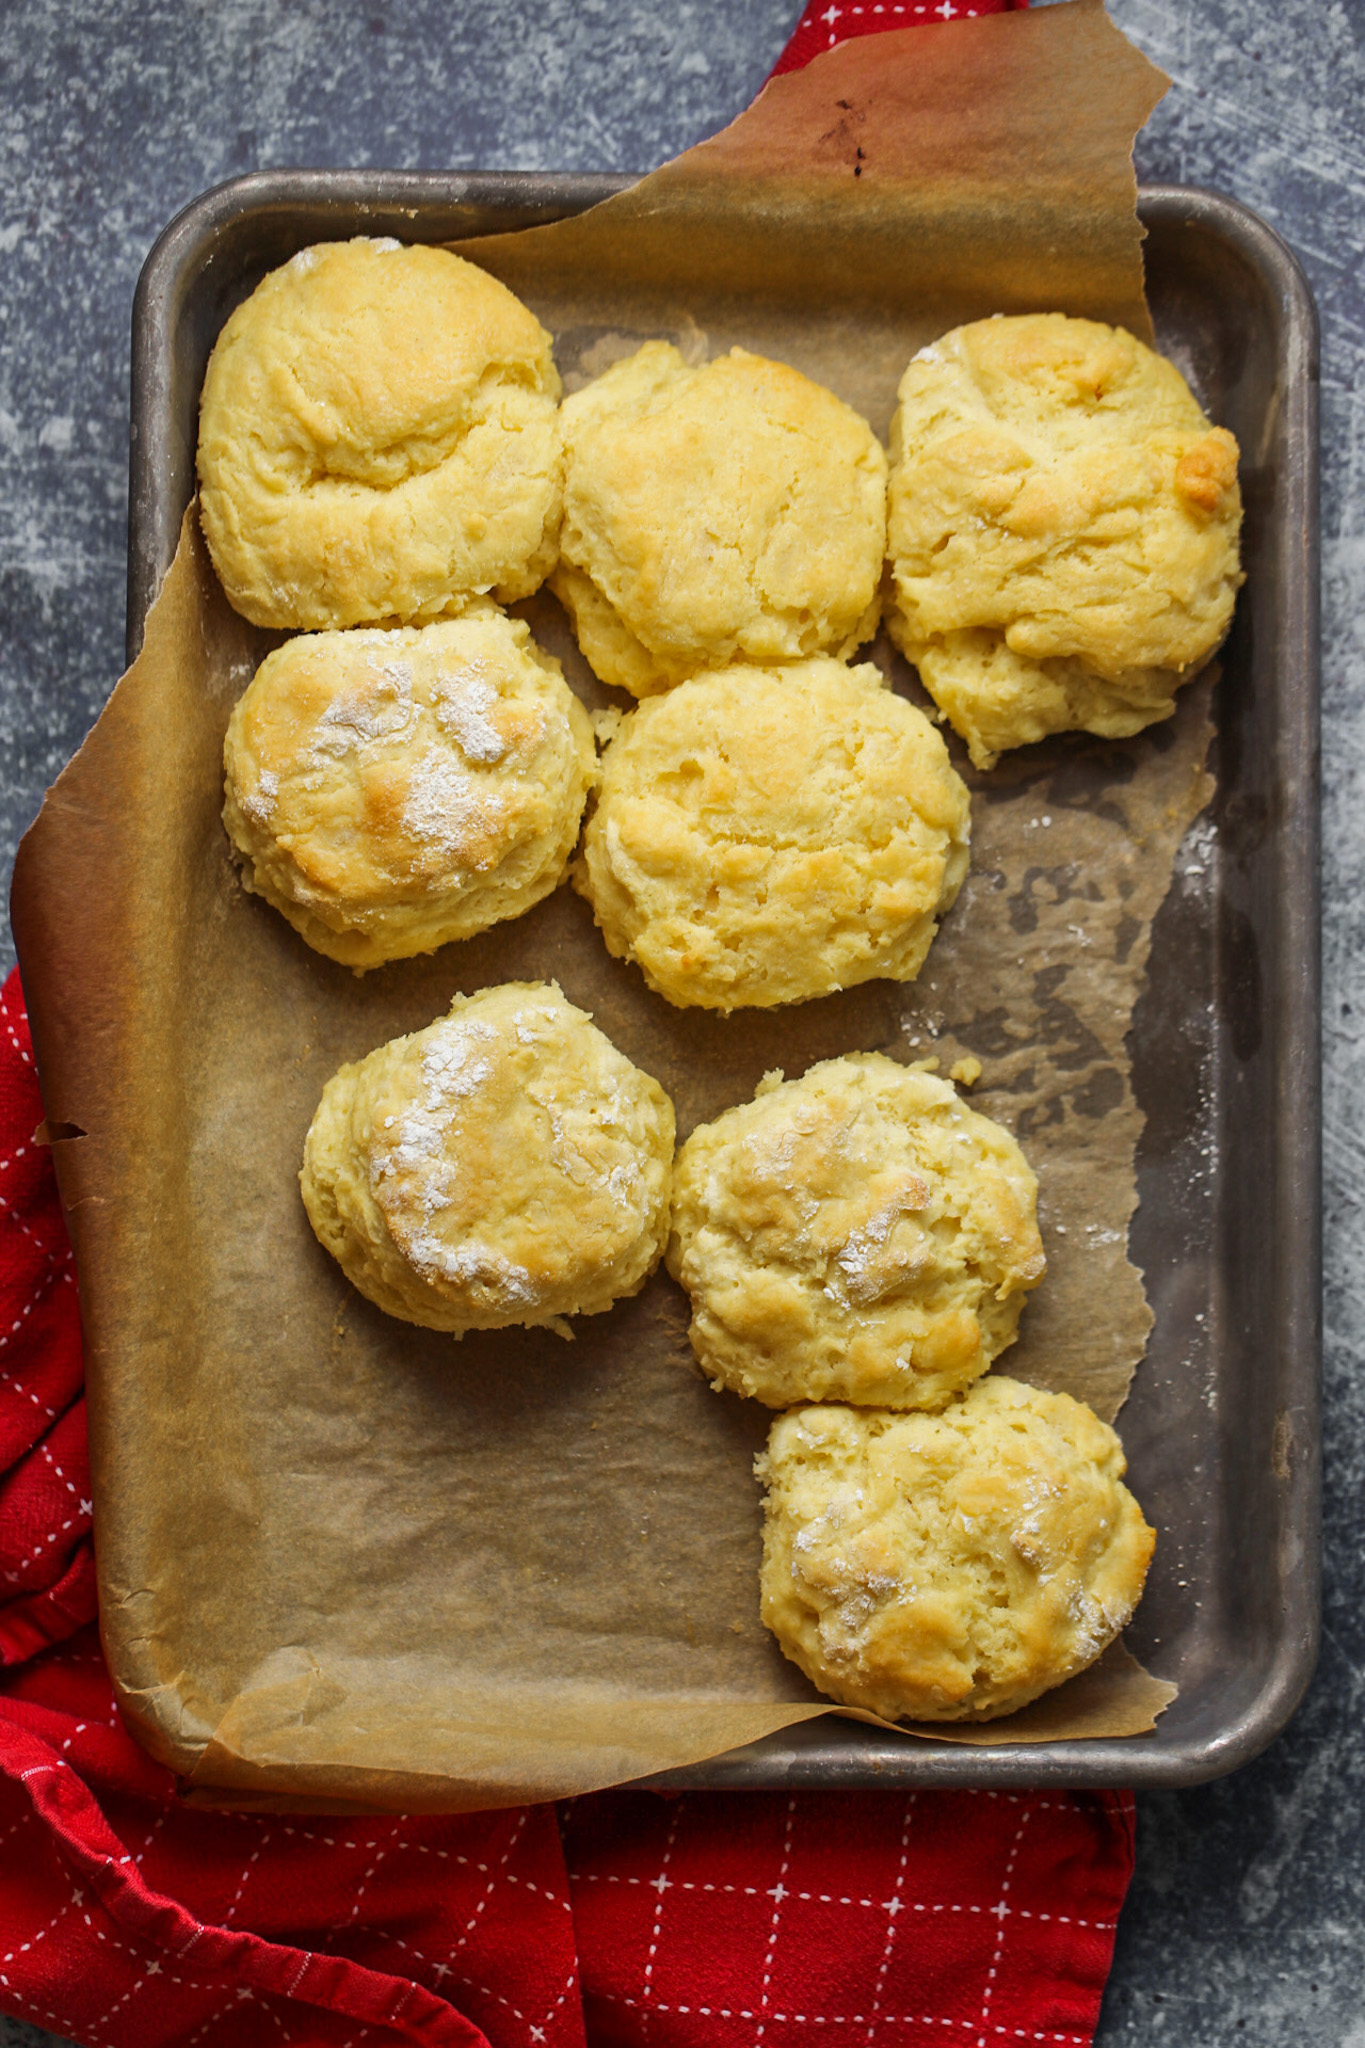 vegan buttermilk biscuits in pan